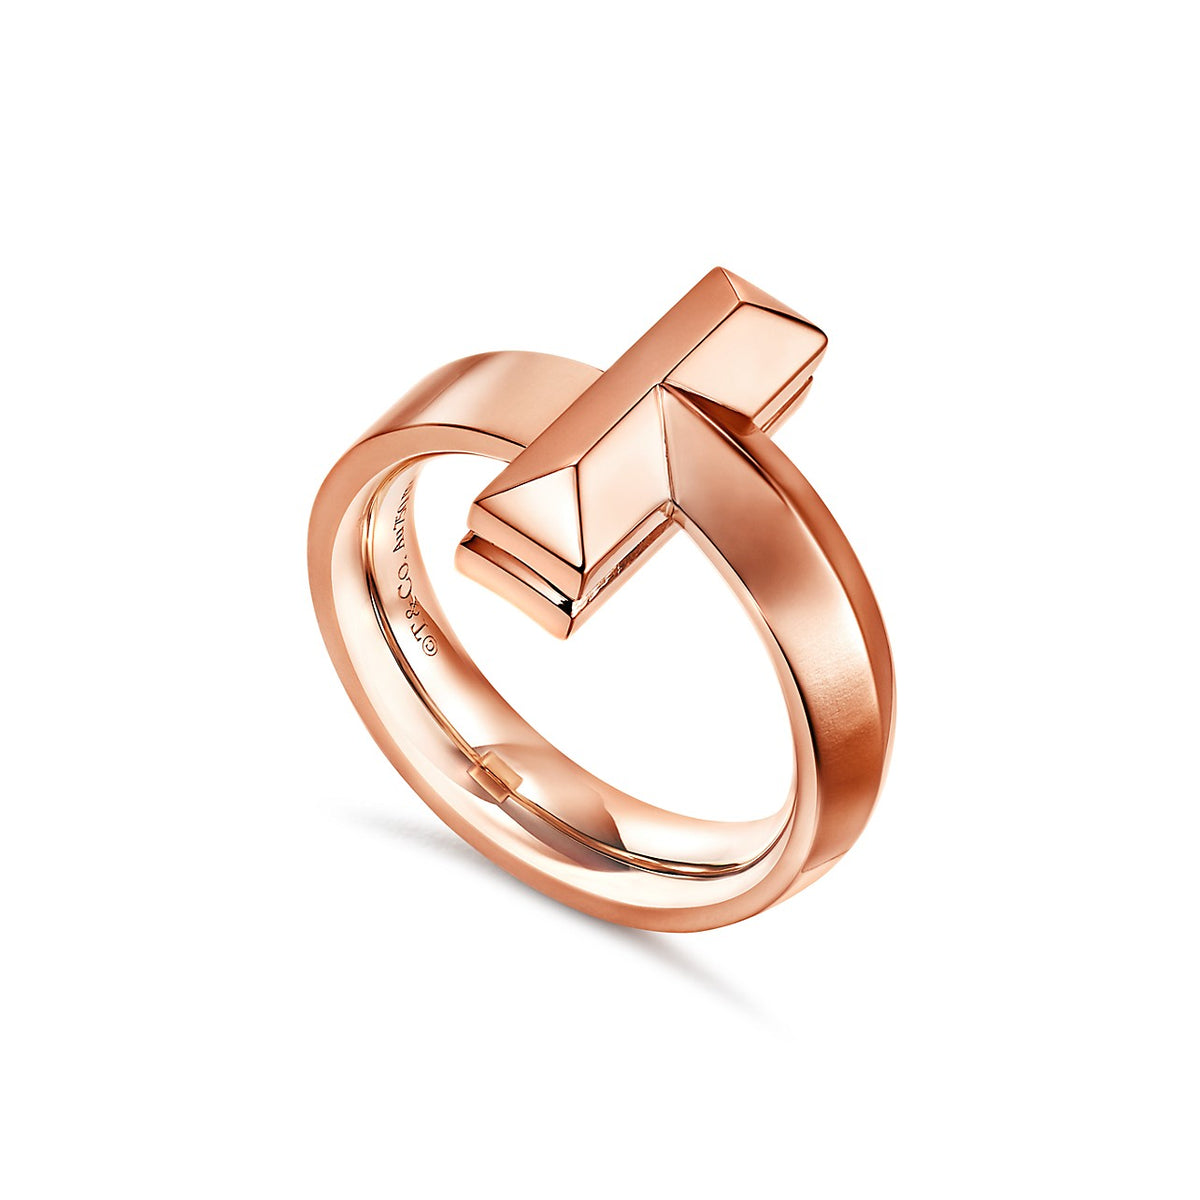 Tiffany T1 wide diamond ring in 18k rose gold